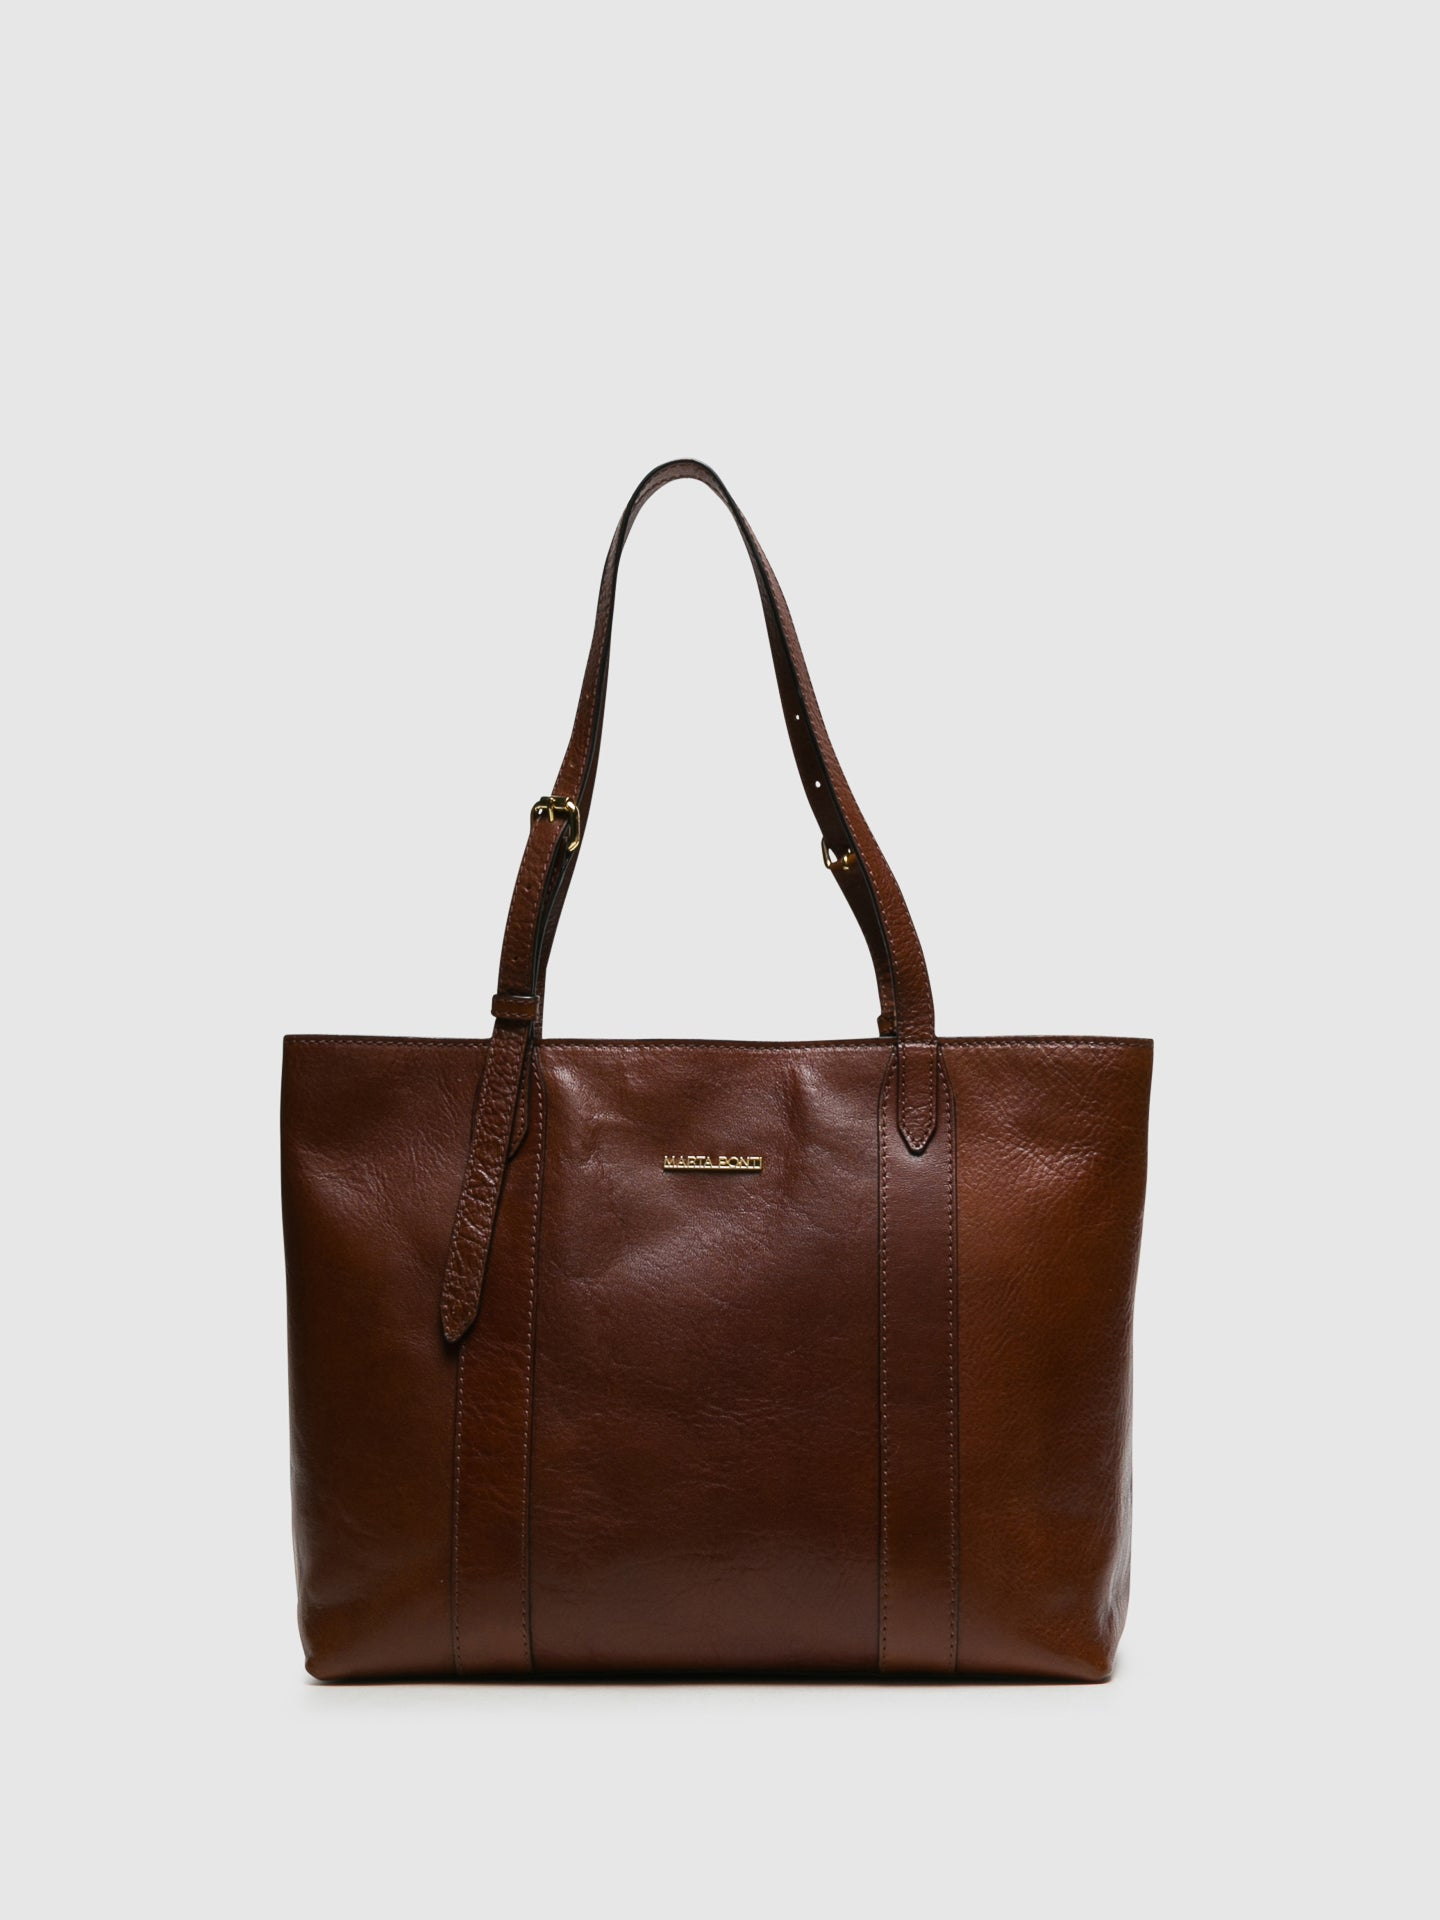 MARTA PONTI Chocolate Brown Shoulder Bag